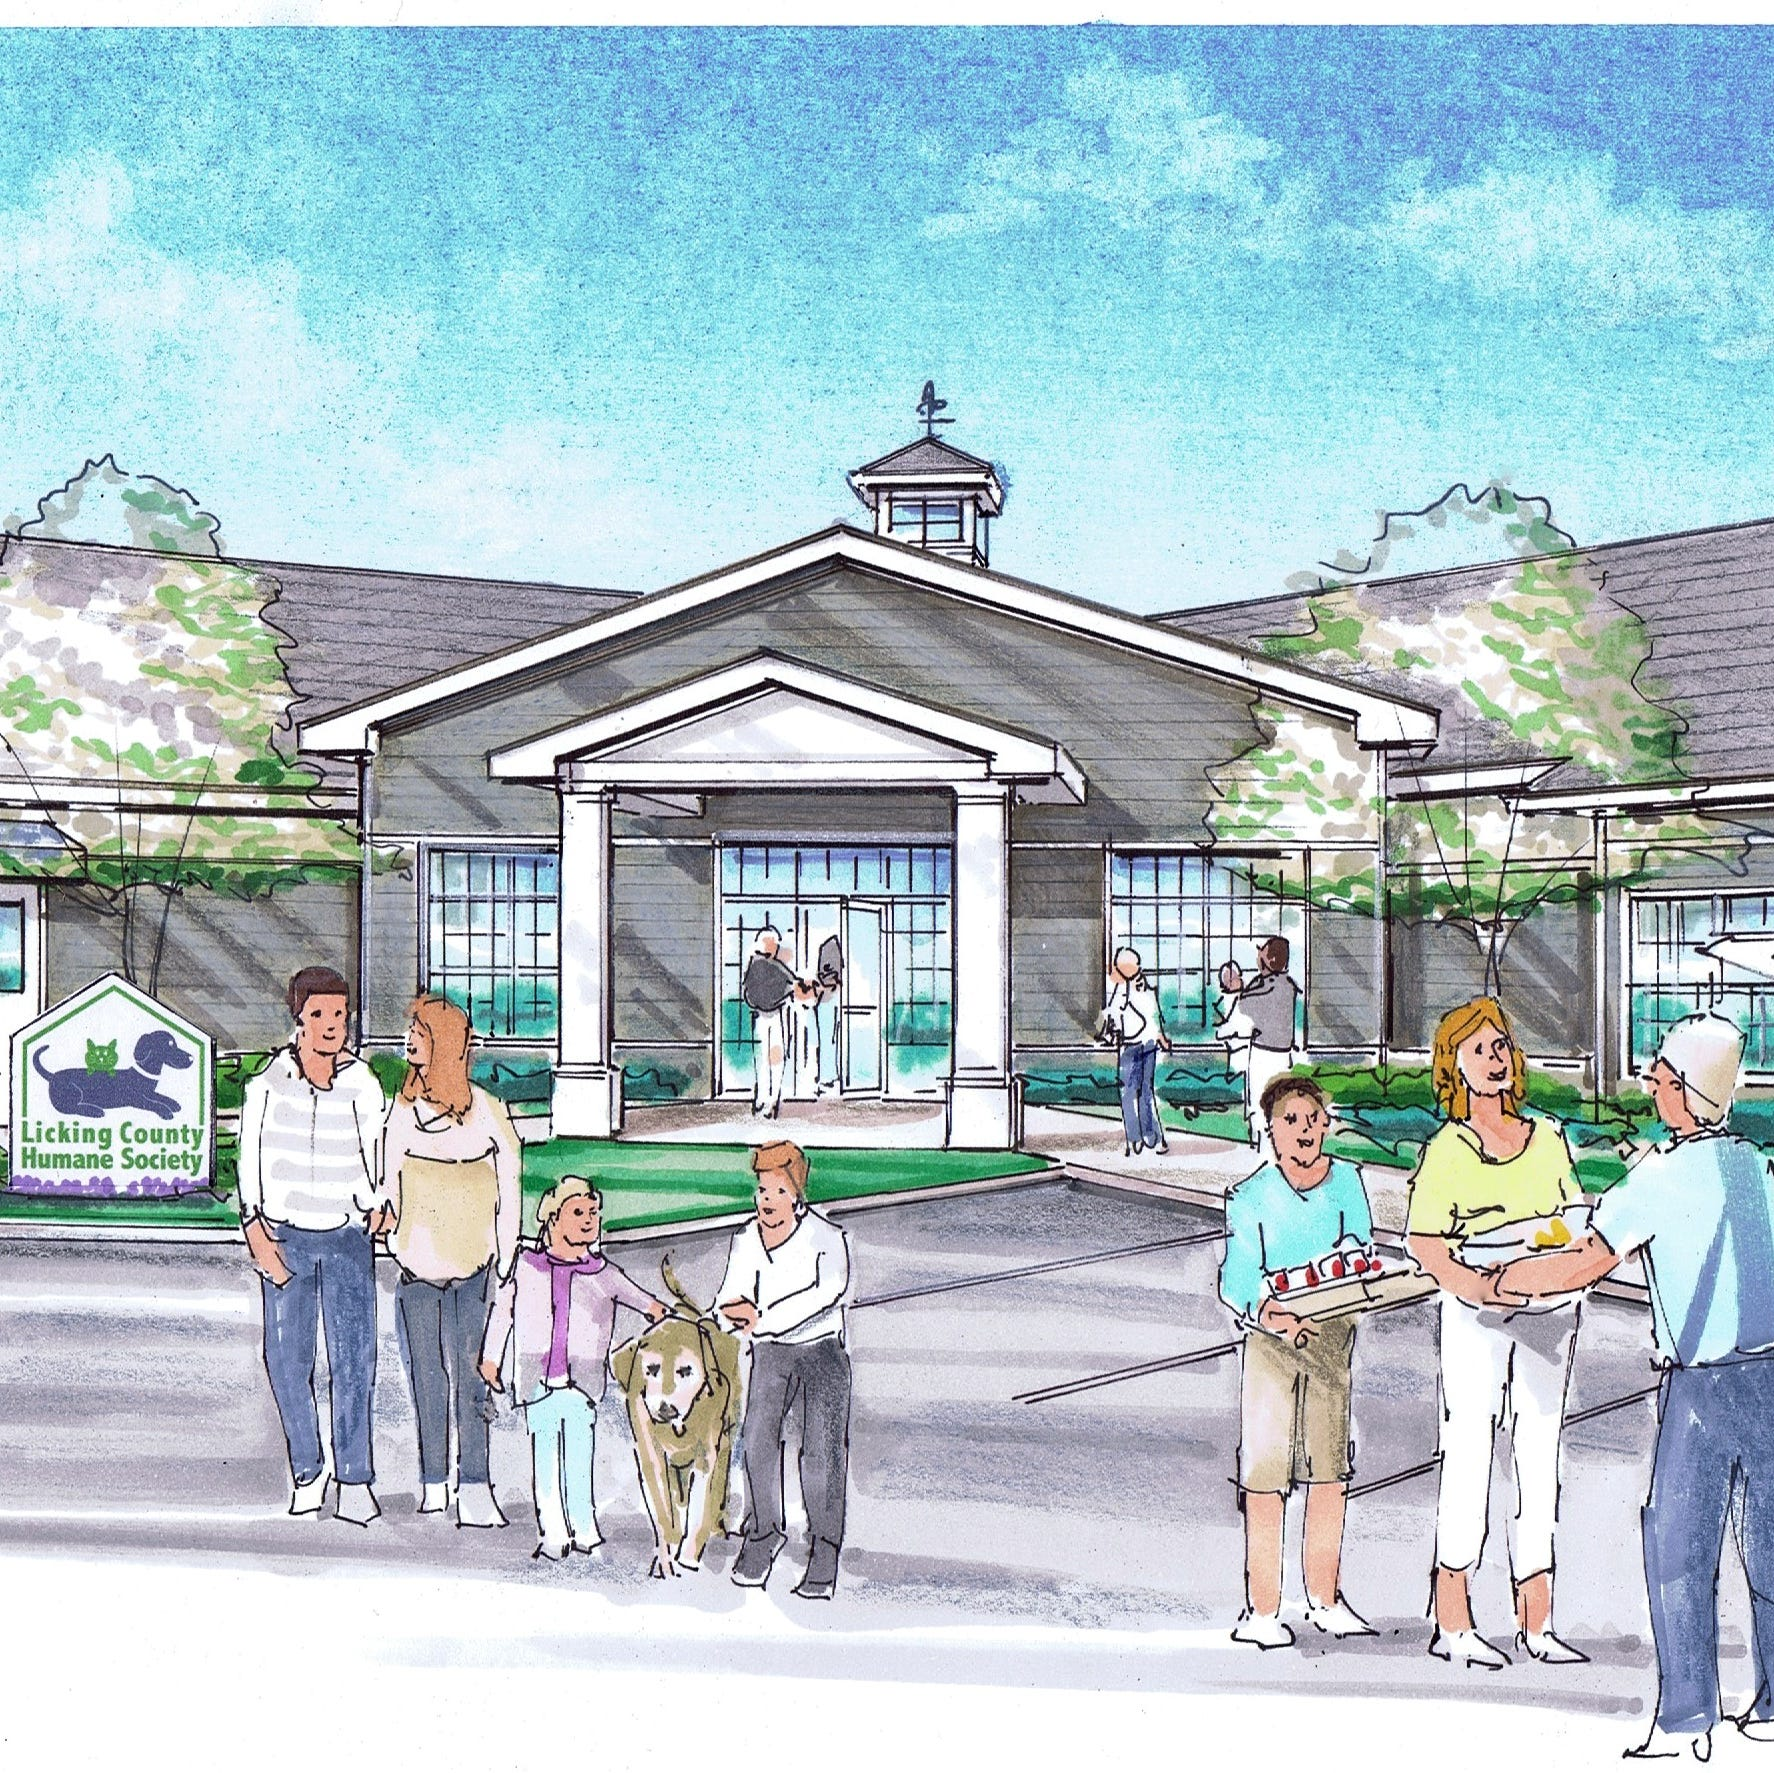 Licking County Humane Society announces expansion campaign